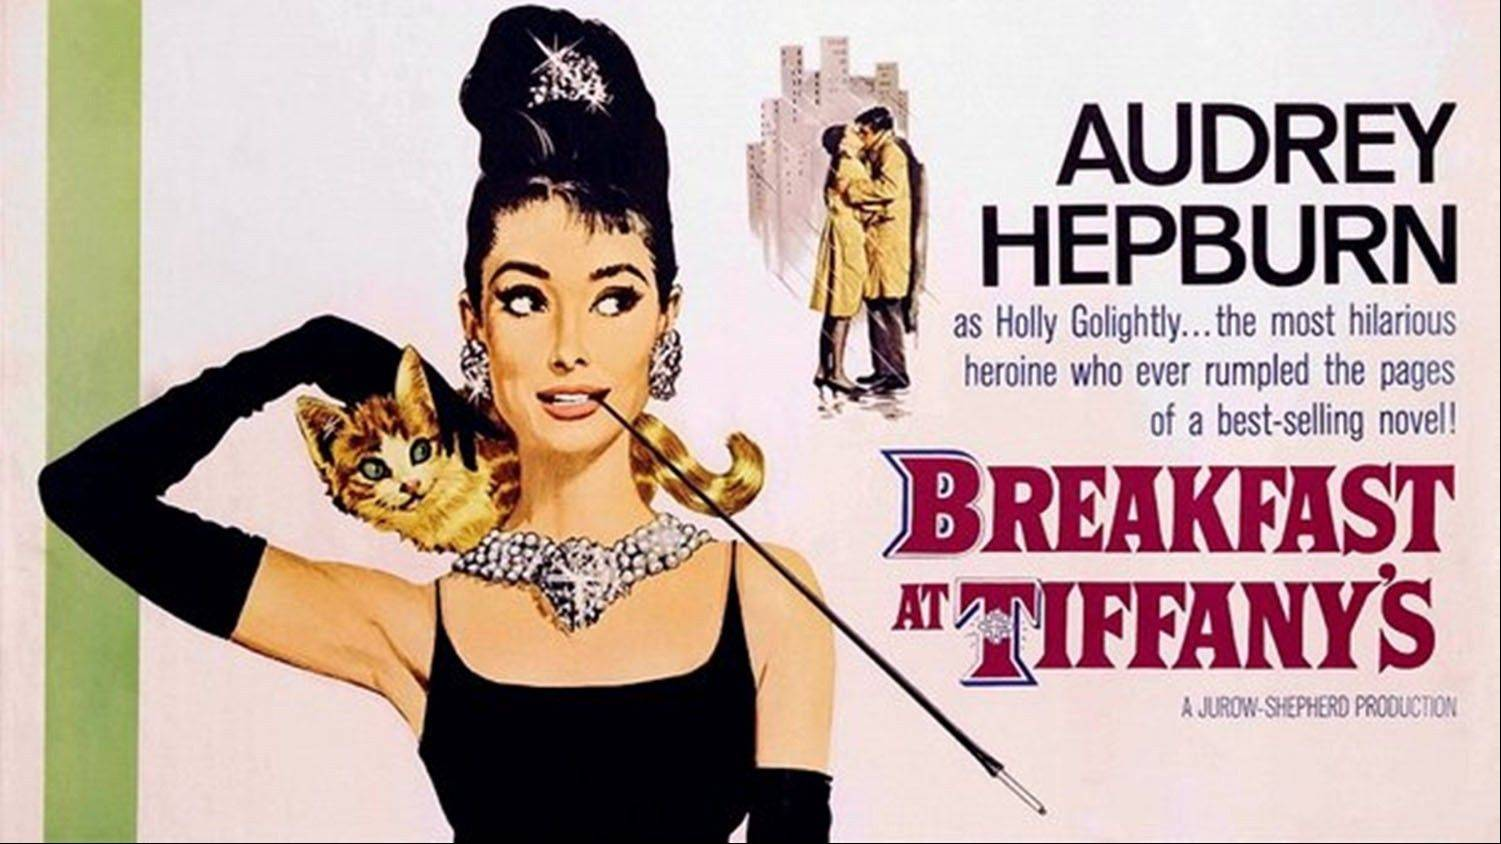 """Breakfast at Tiffany's starring Audrey Hepburn will be inducted into the National Film Registry."